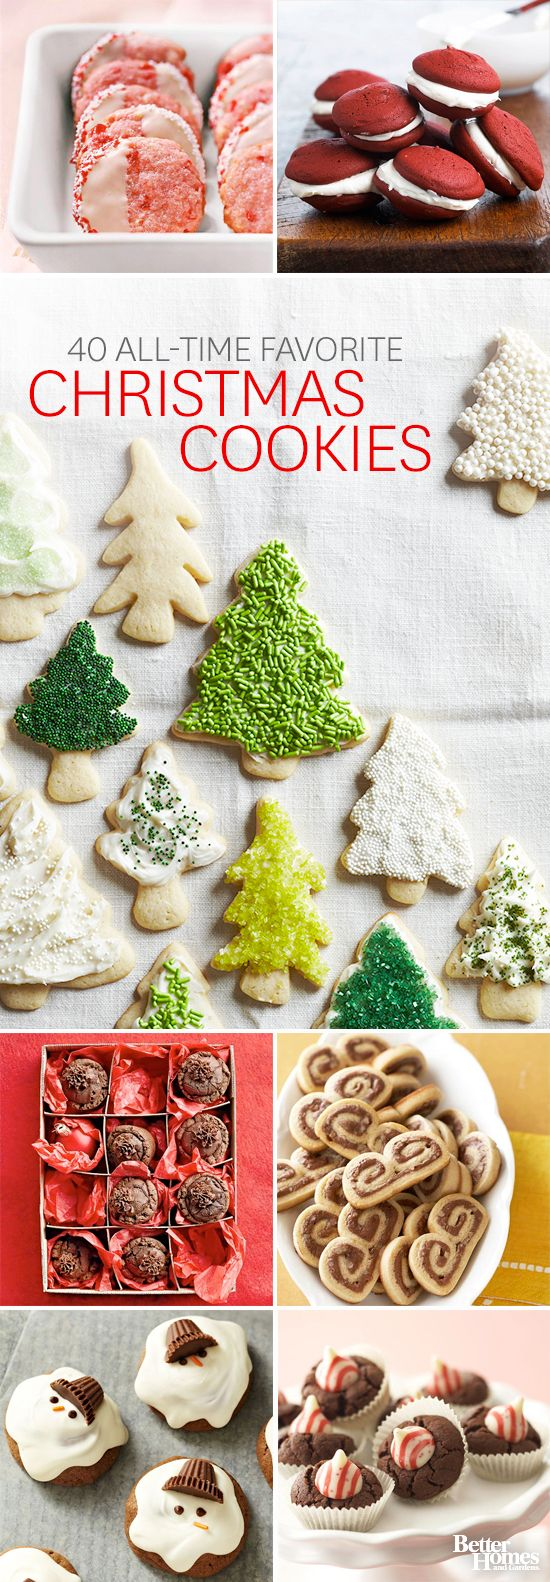 It's our favorite time of year: Christmas Cookie Season! Here are forty of our favorite recipes: http://www.bhg.com/christmas/cookies/favorite-christmas-cookies-and-bars/?socsrc=bhgpin120113alltimefavoritechristmascookies